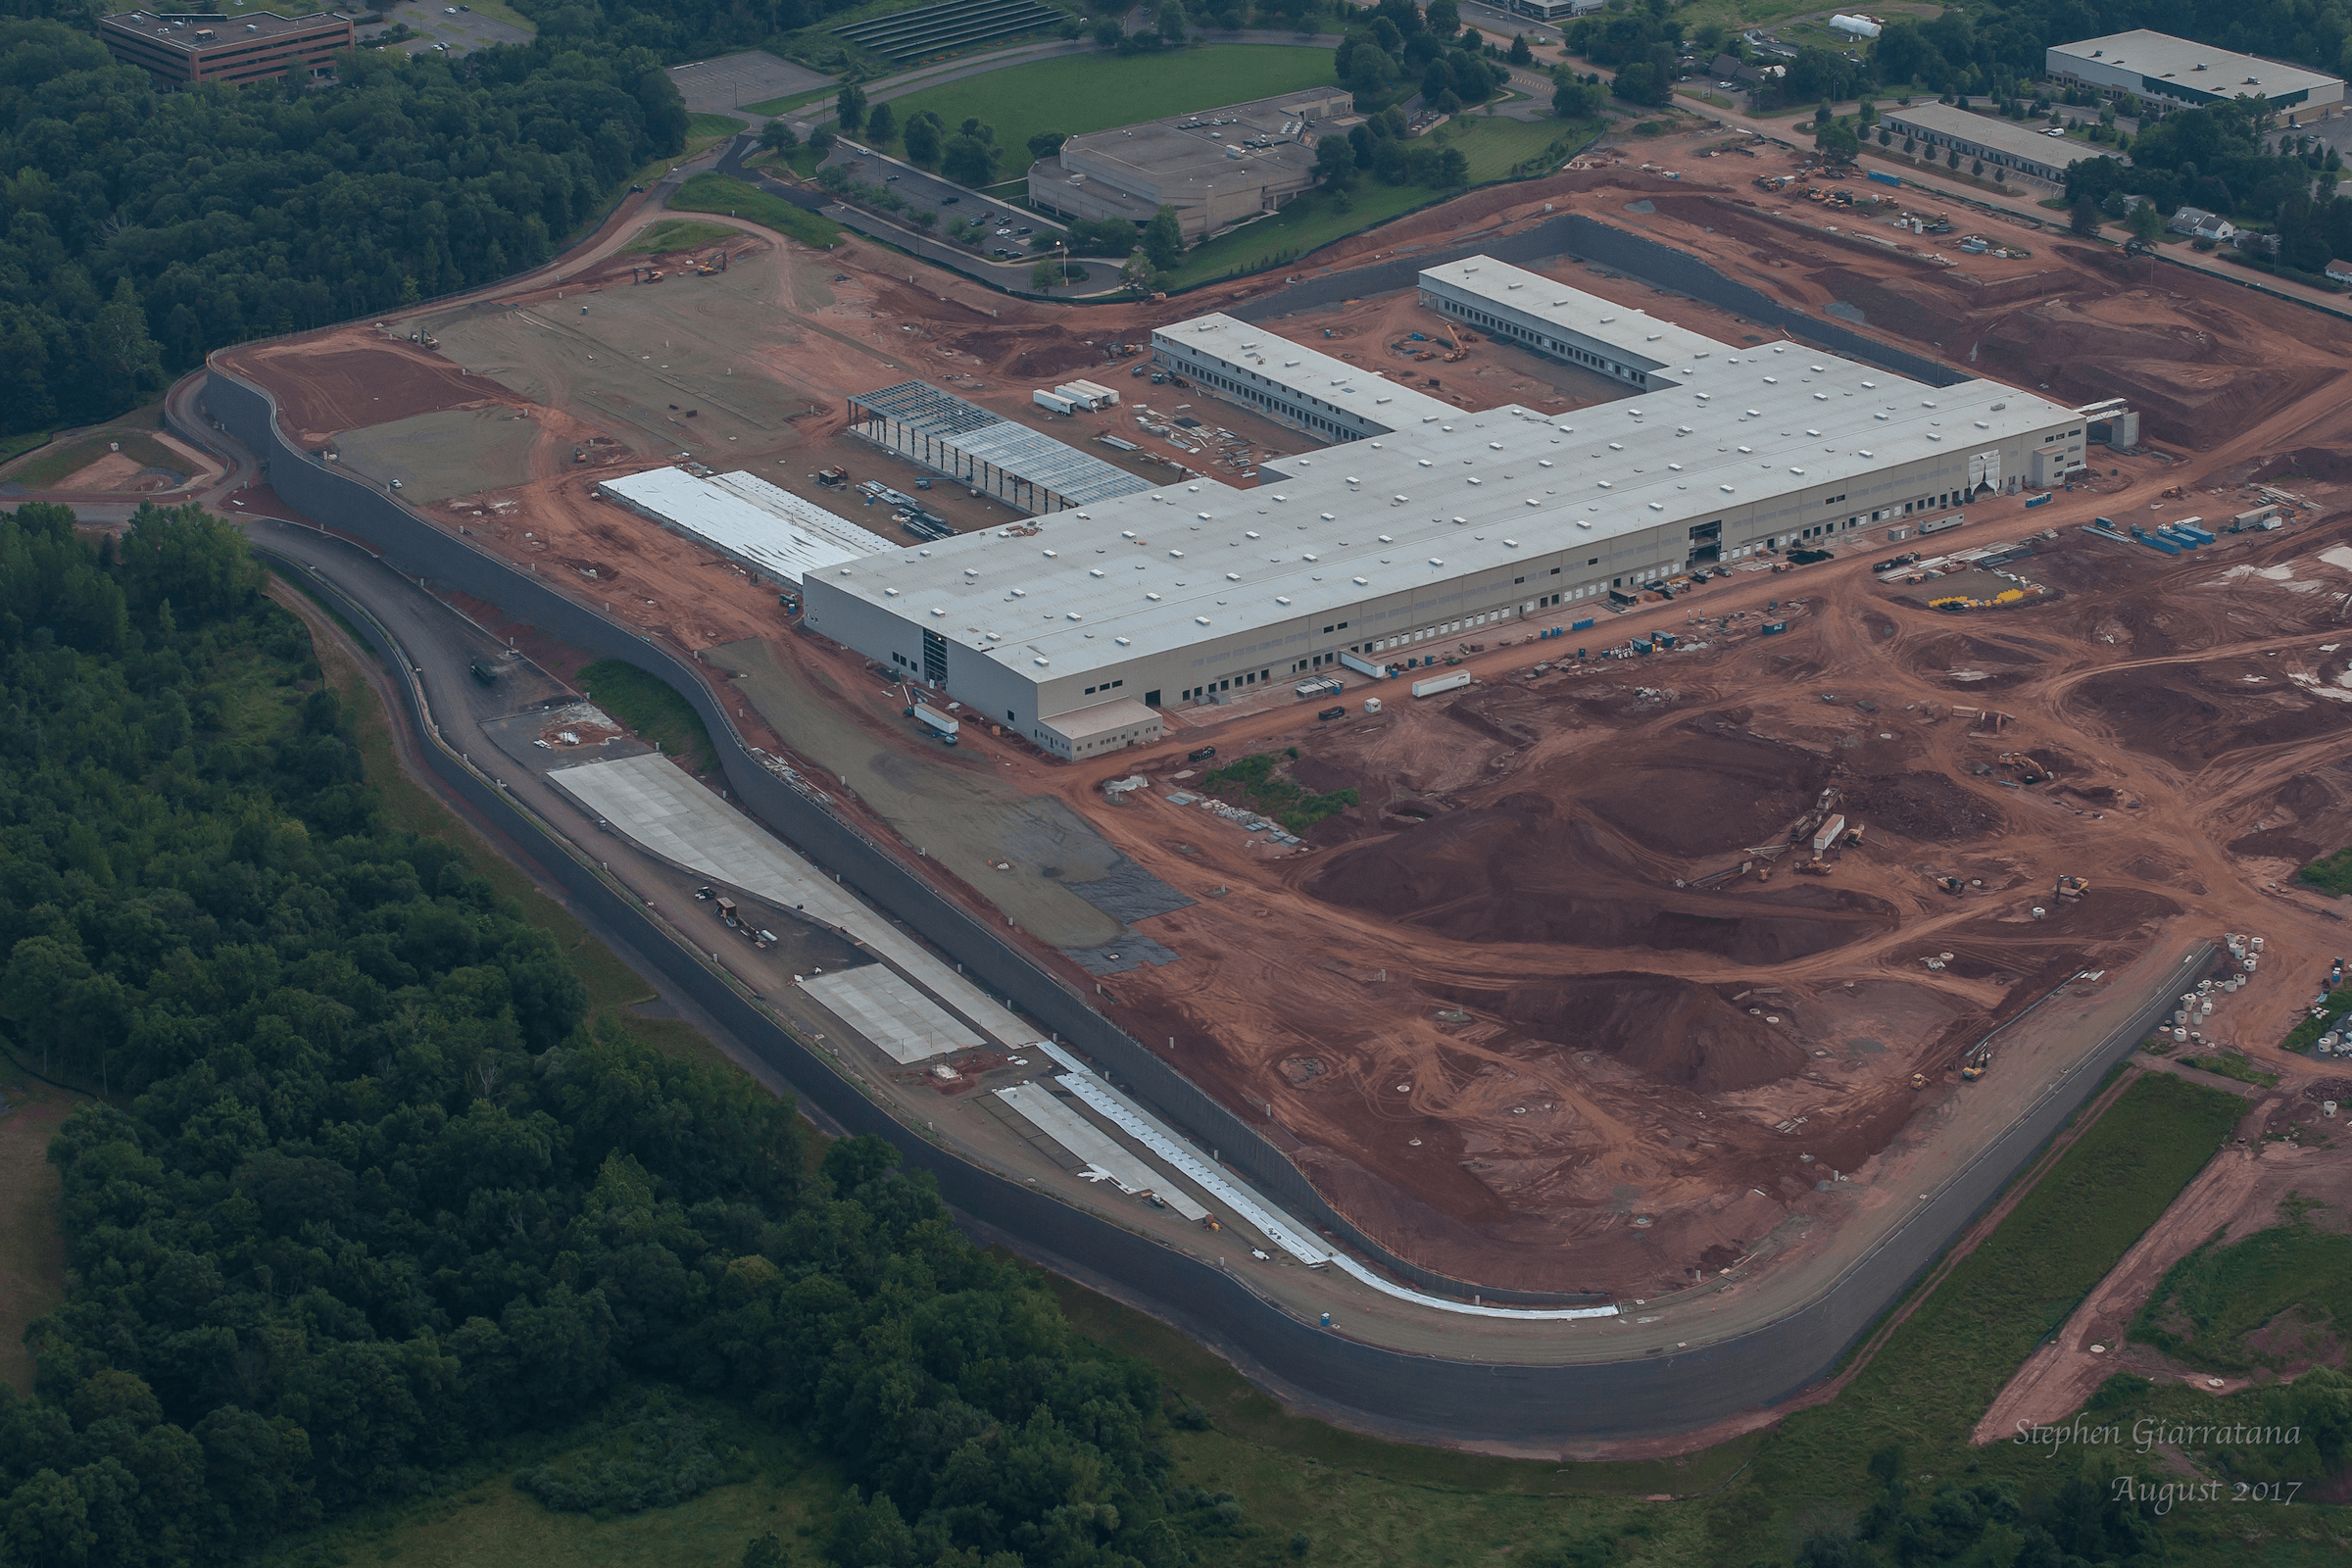 Fedex facility in middletown, Ct. Partially built